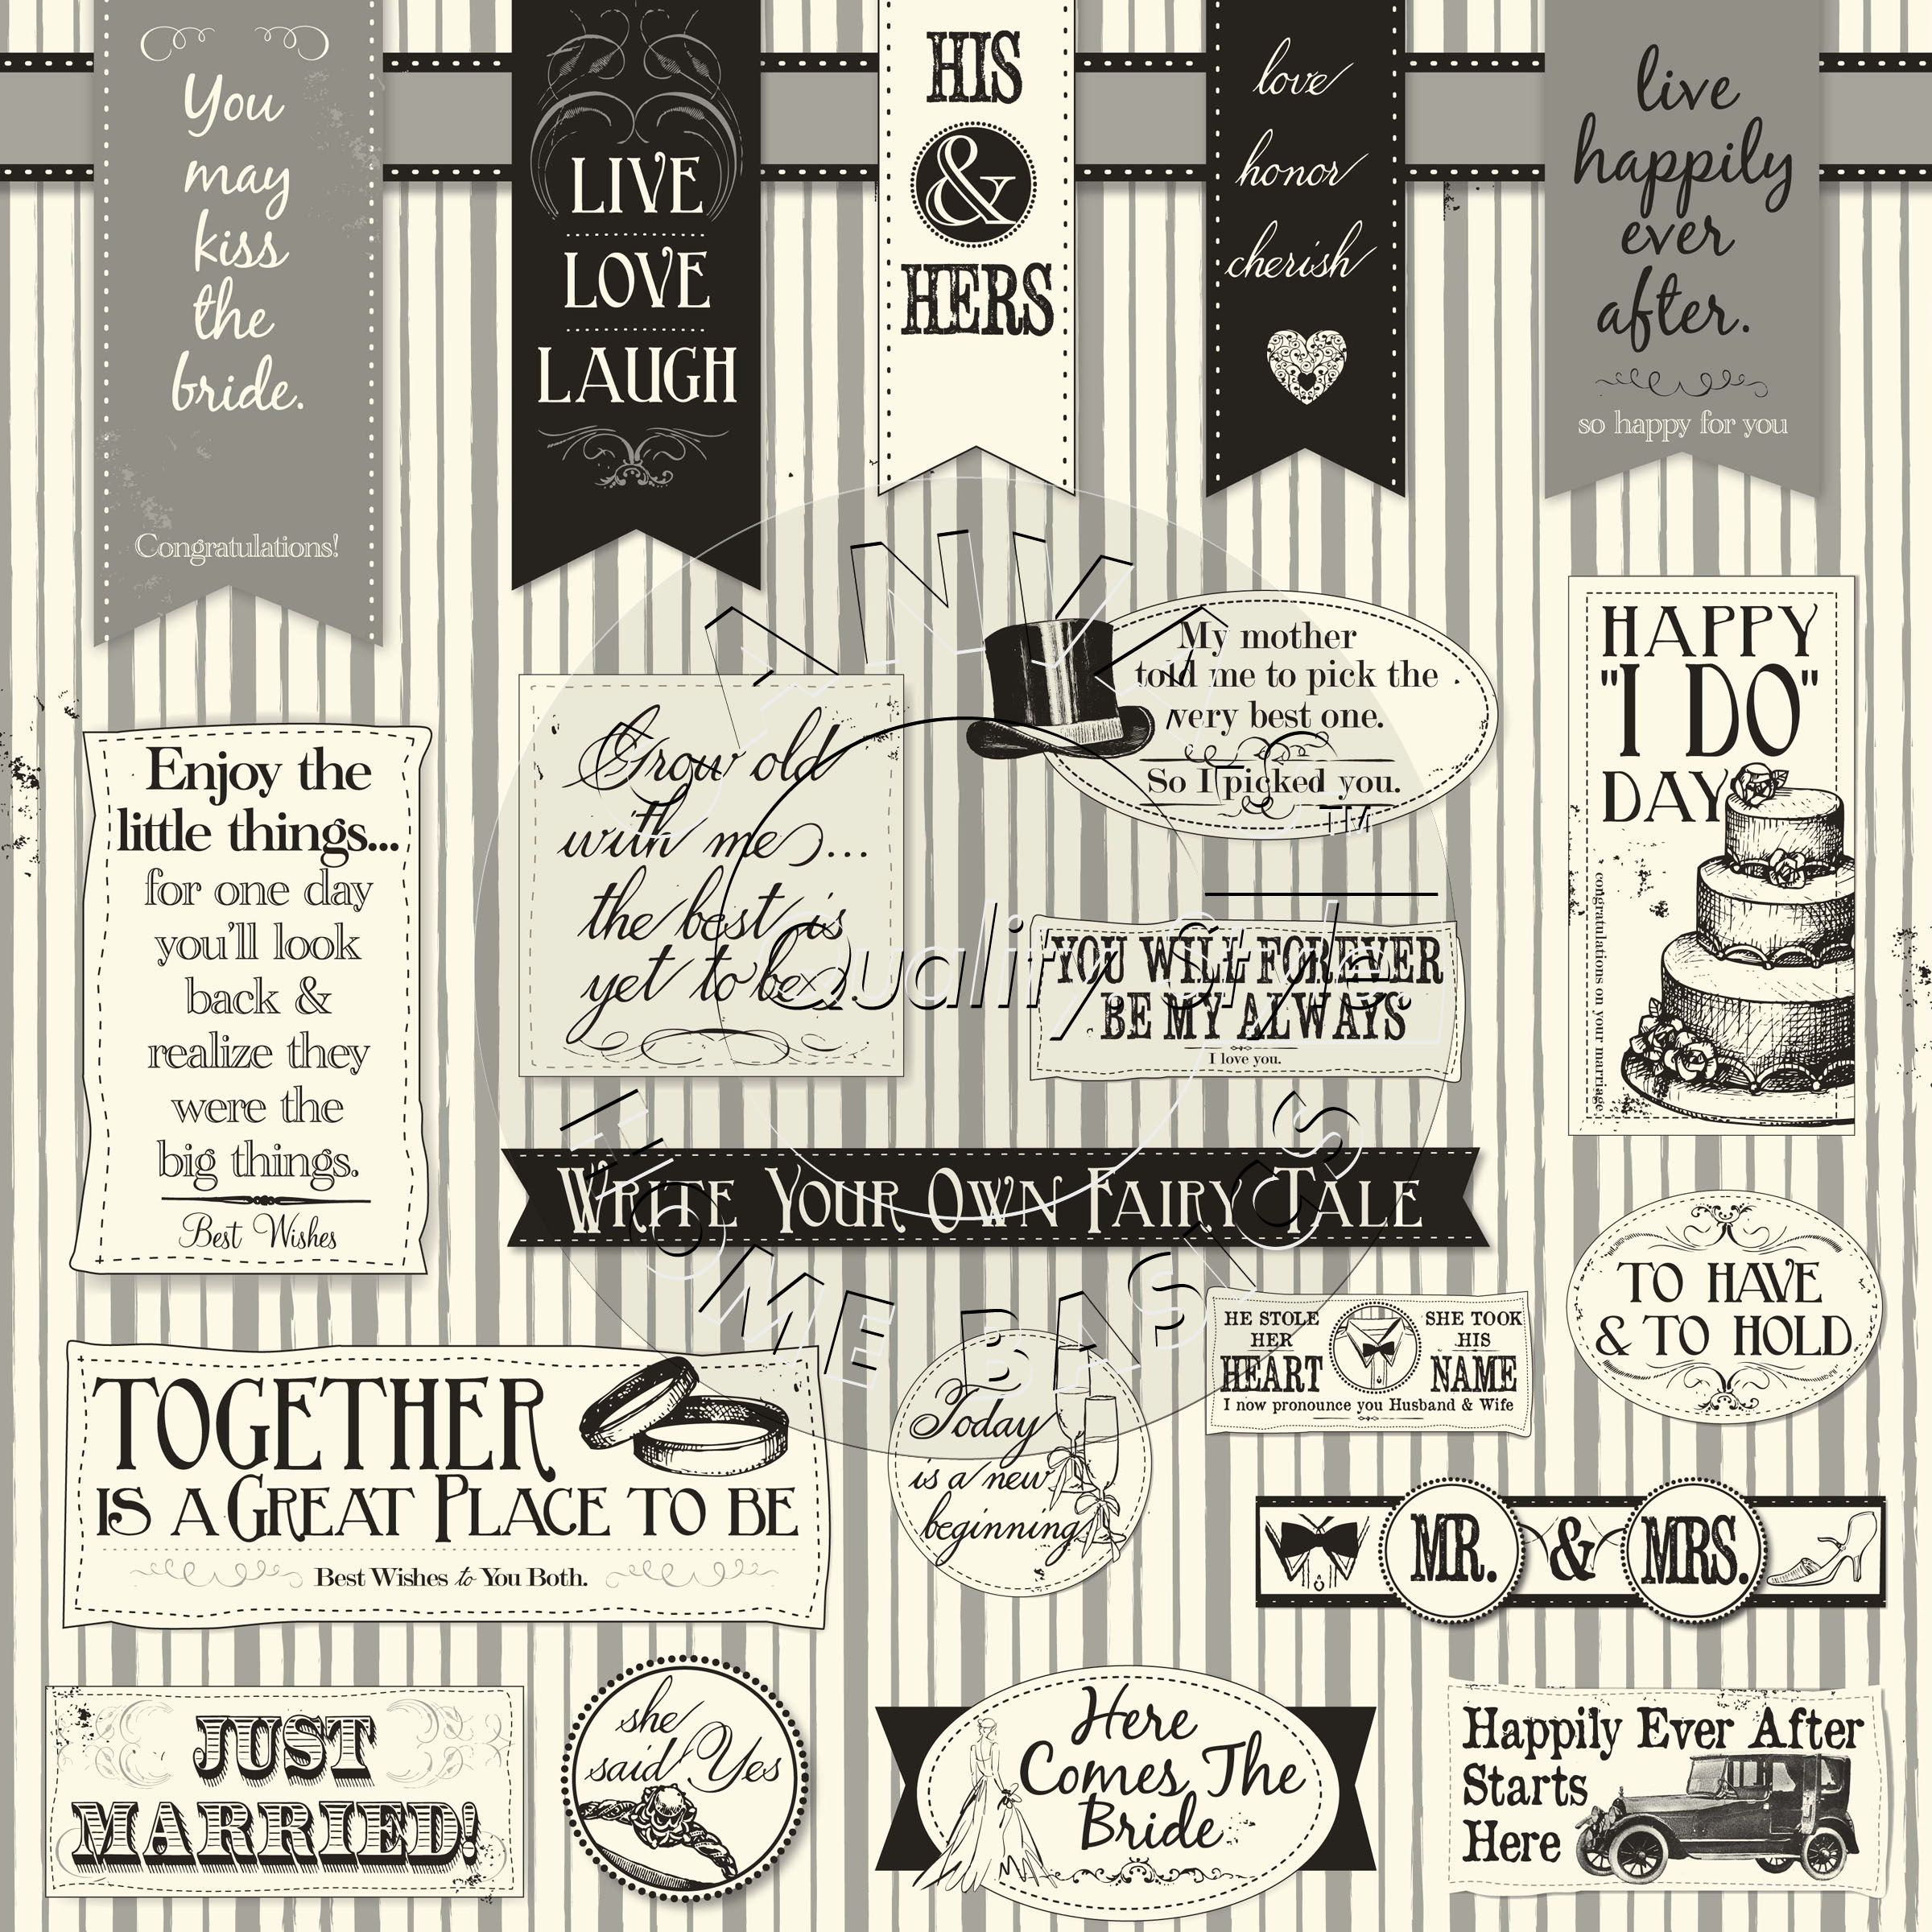 CCP2809 Canvas Home Basics 'His and Hers Sayings' 12x12